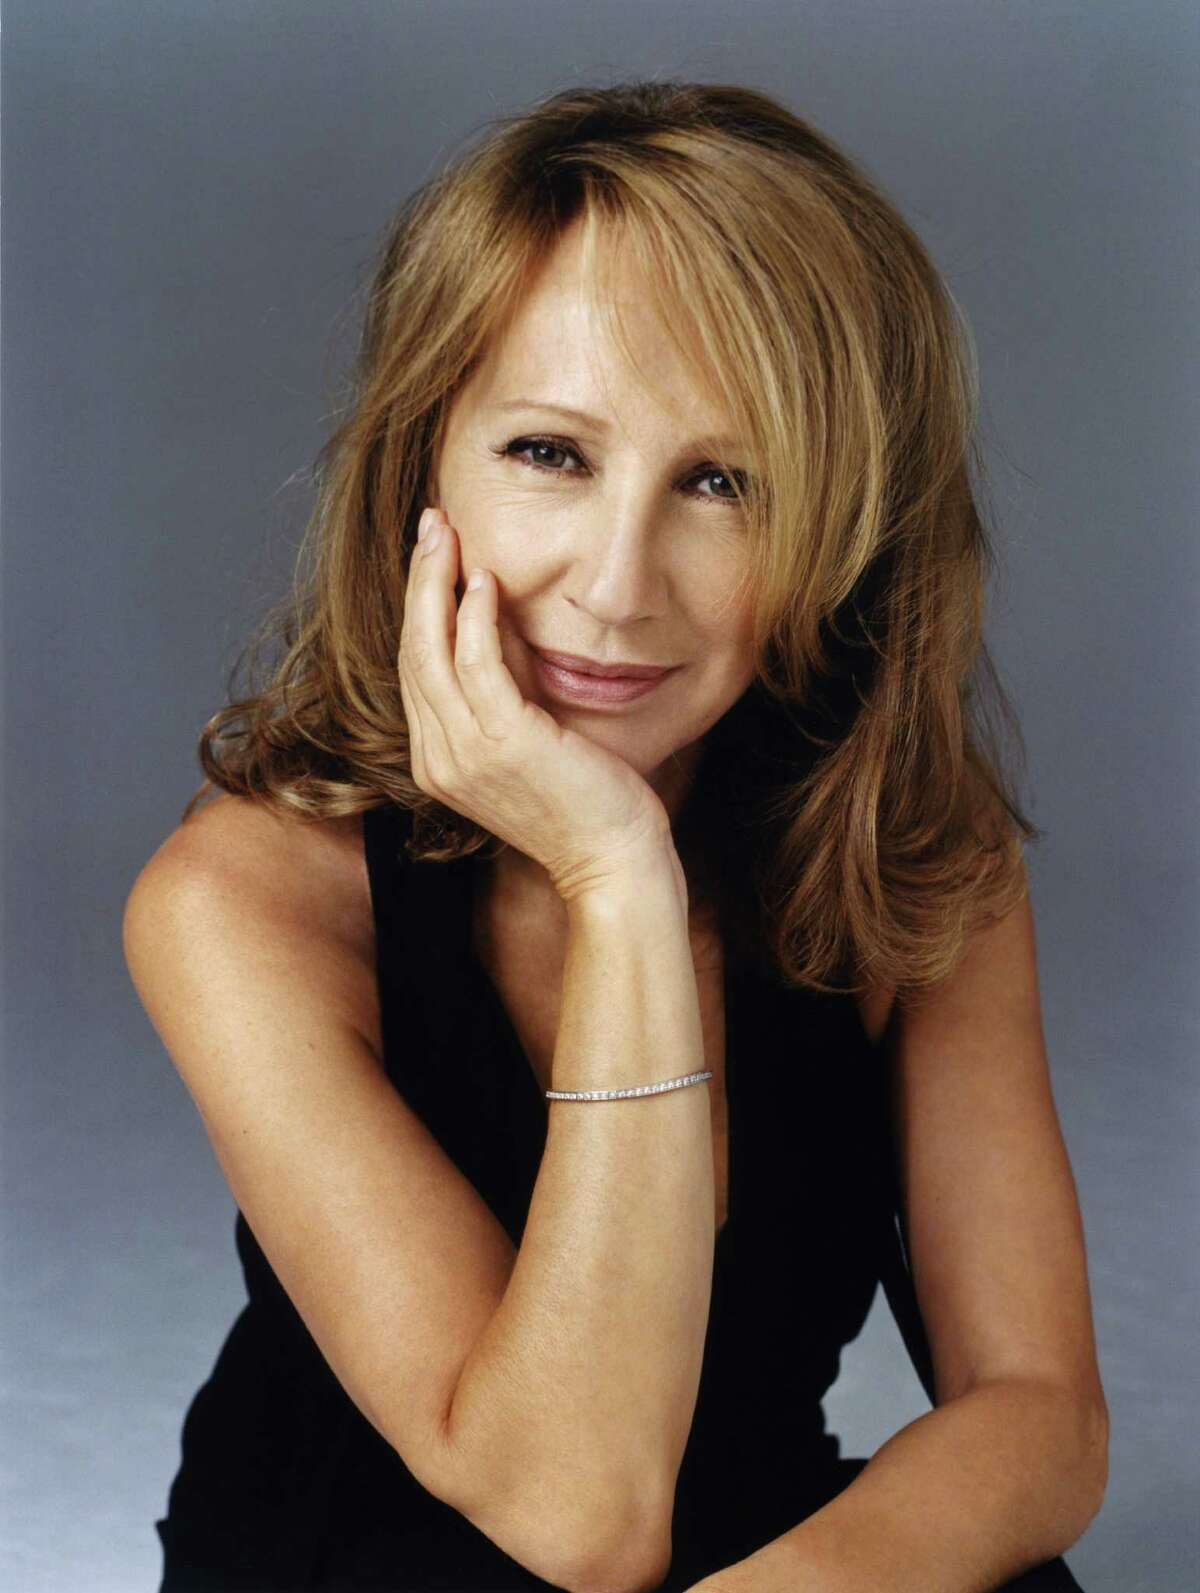 Nathalie Baye, who has appeared in more than 80 films, is the guest of honor at Focus on French Cinema.